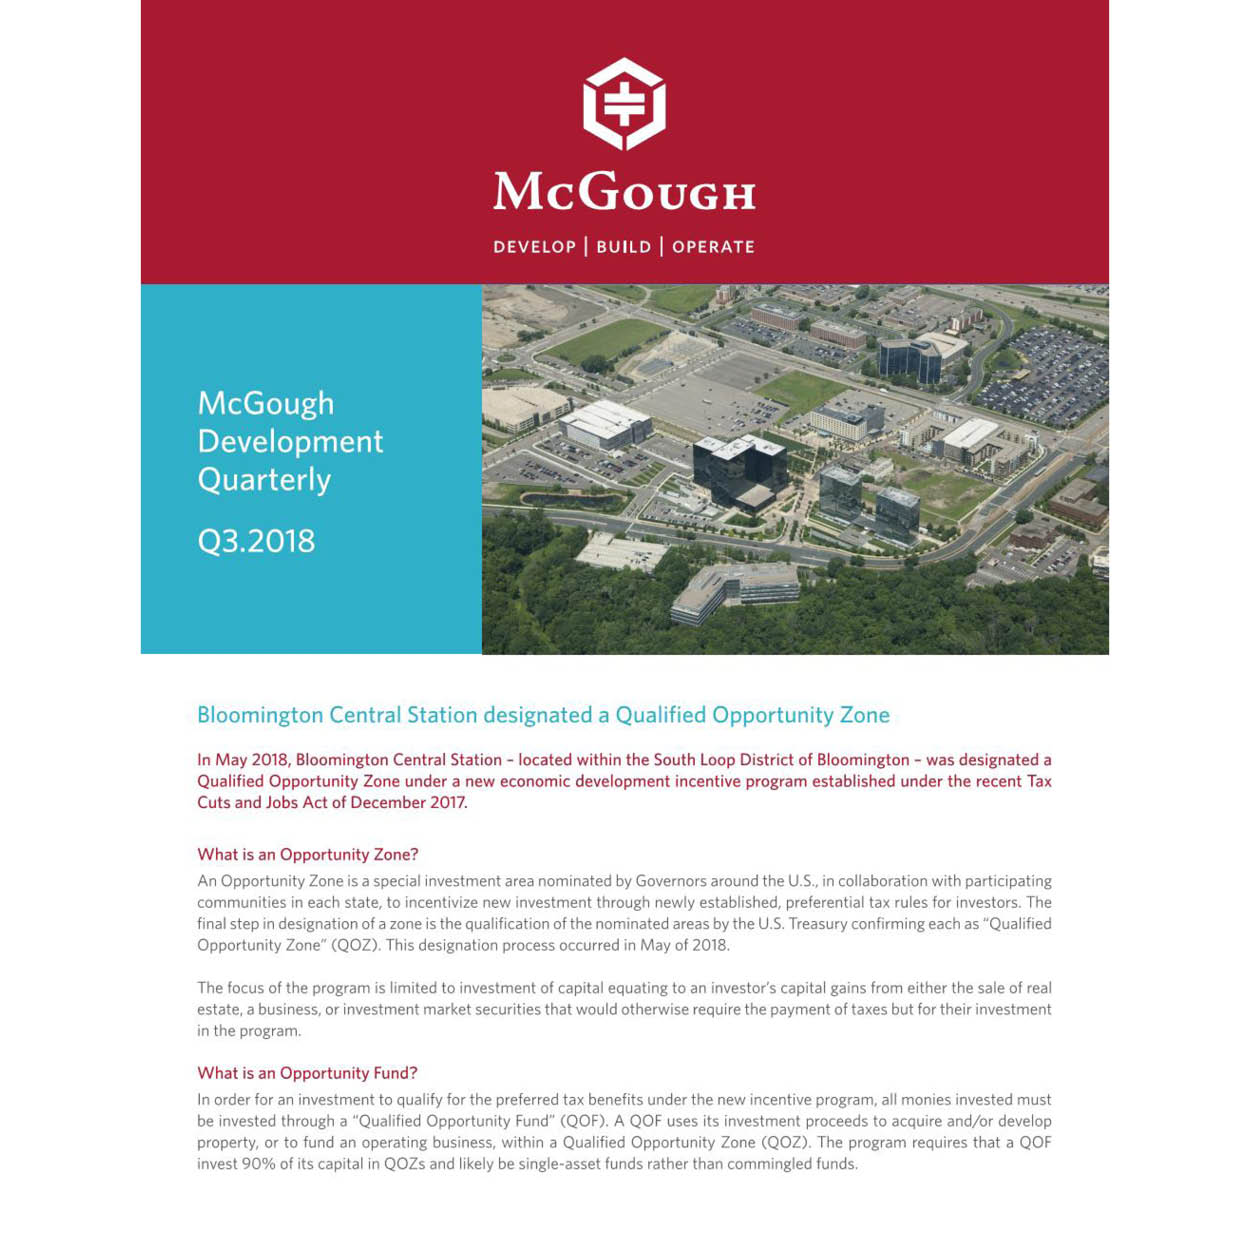 McGough Development Quarterly Newsletter Q3 2018